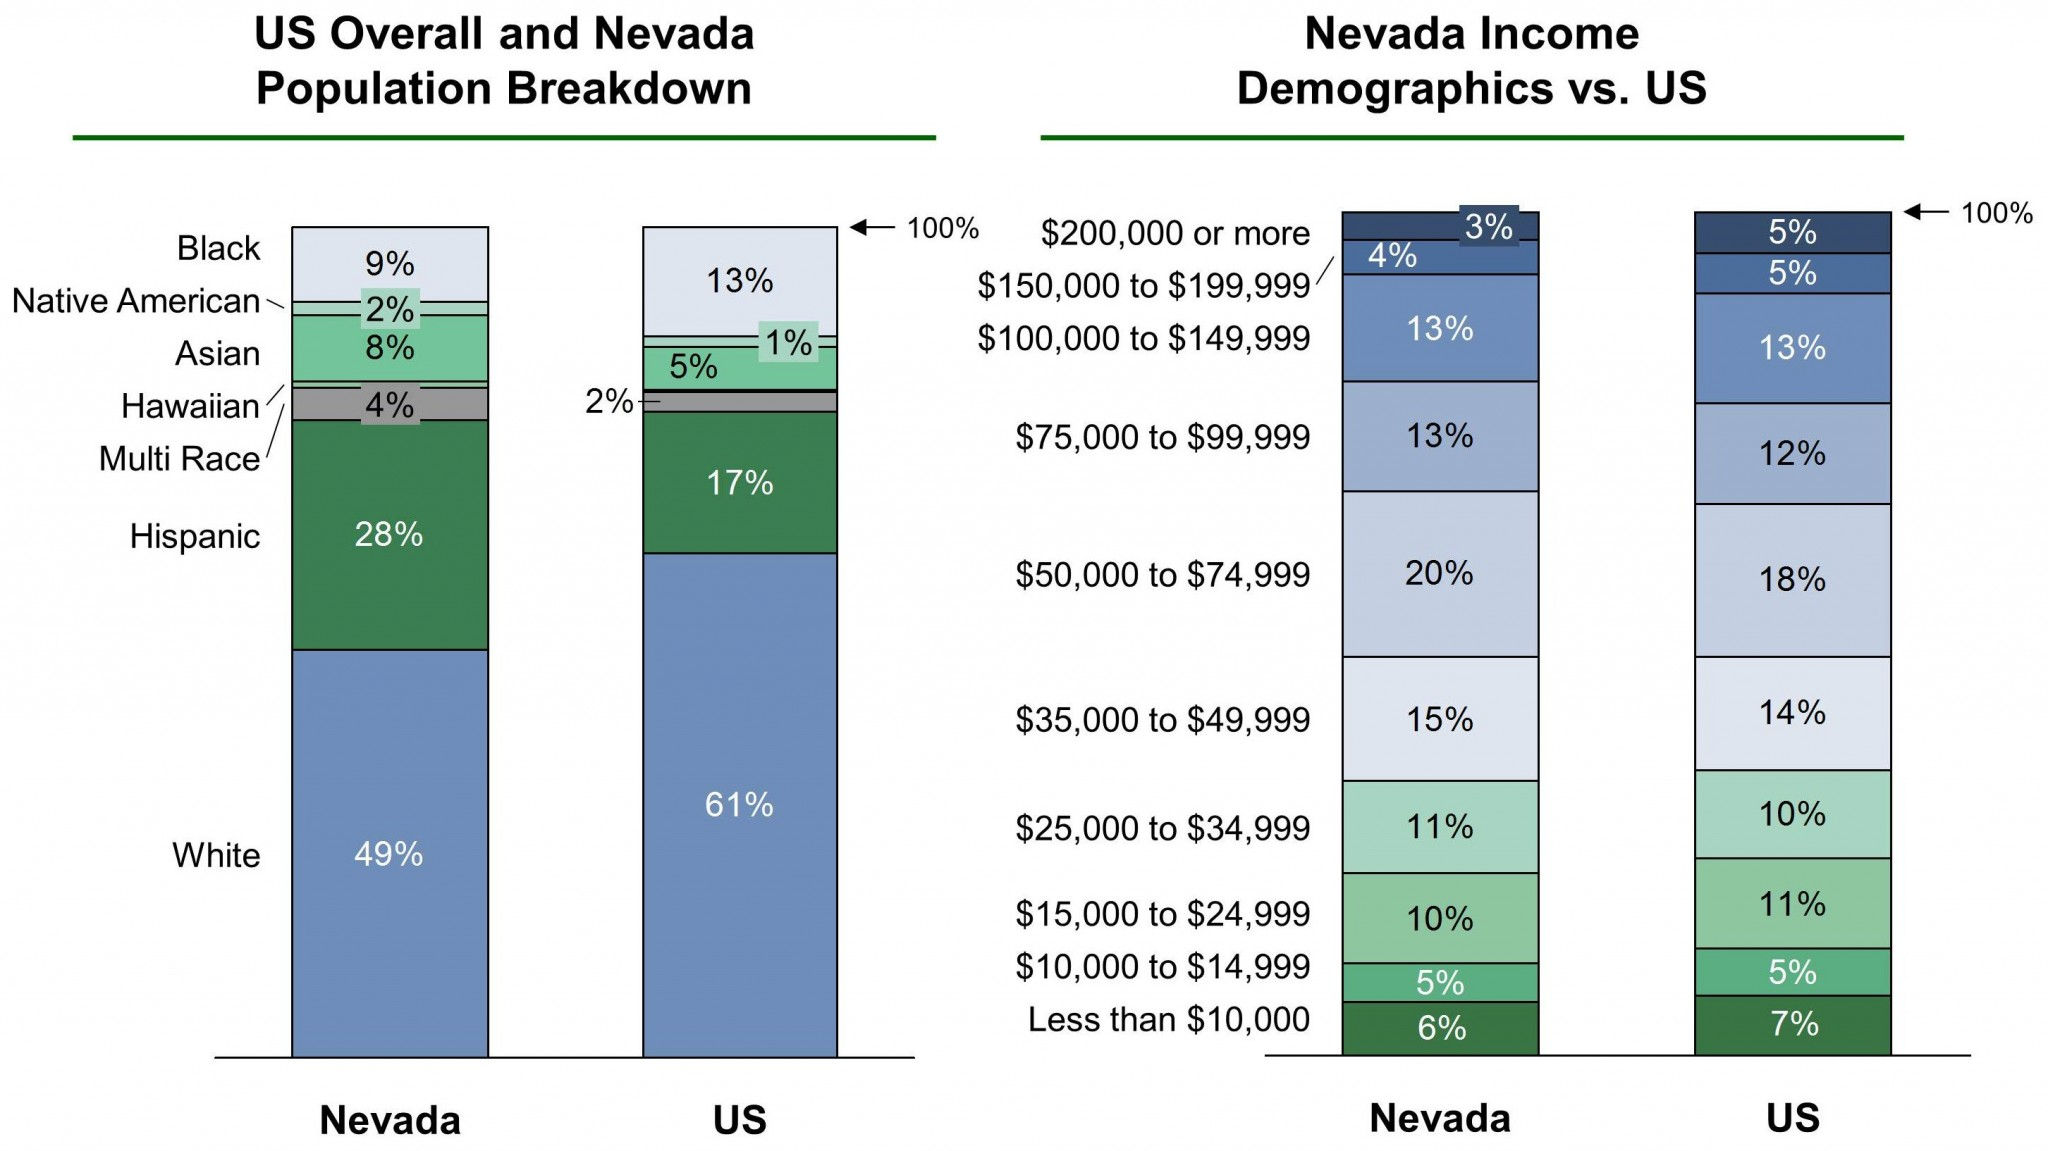 Nevada EB-5 Regional Center Demographics VF